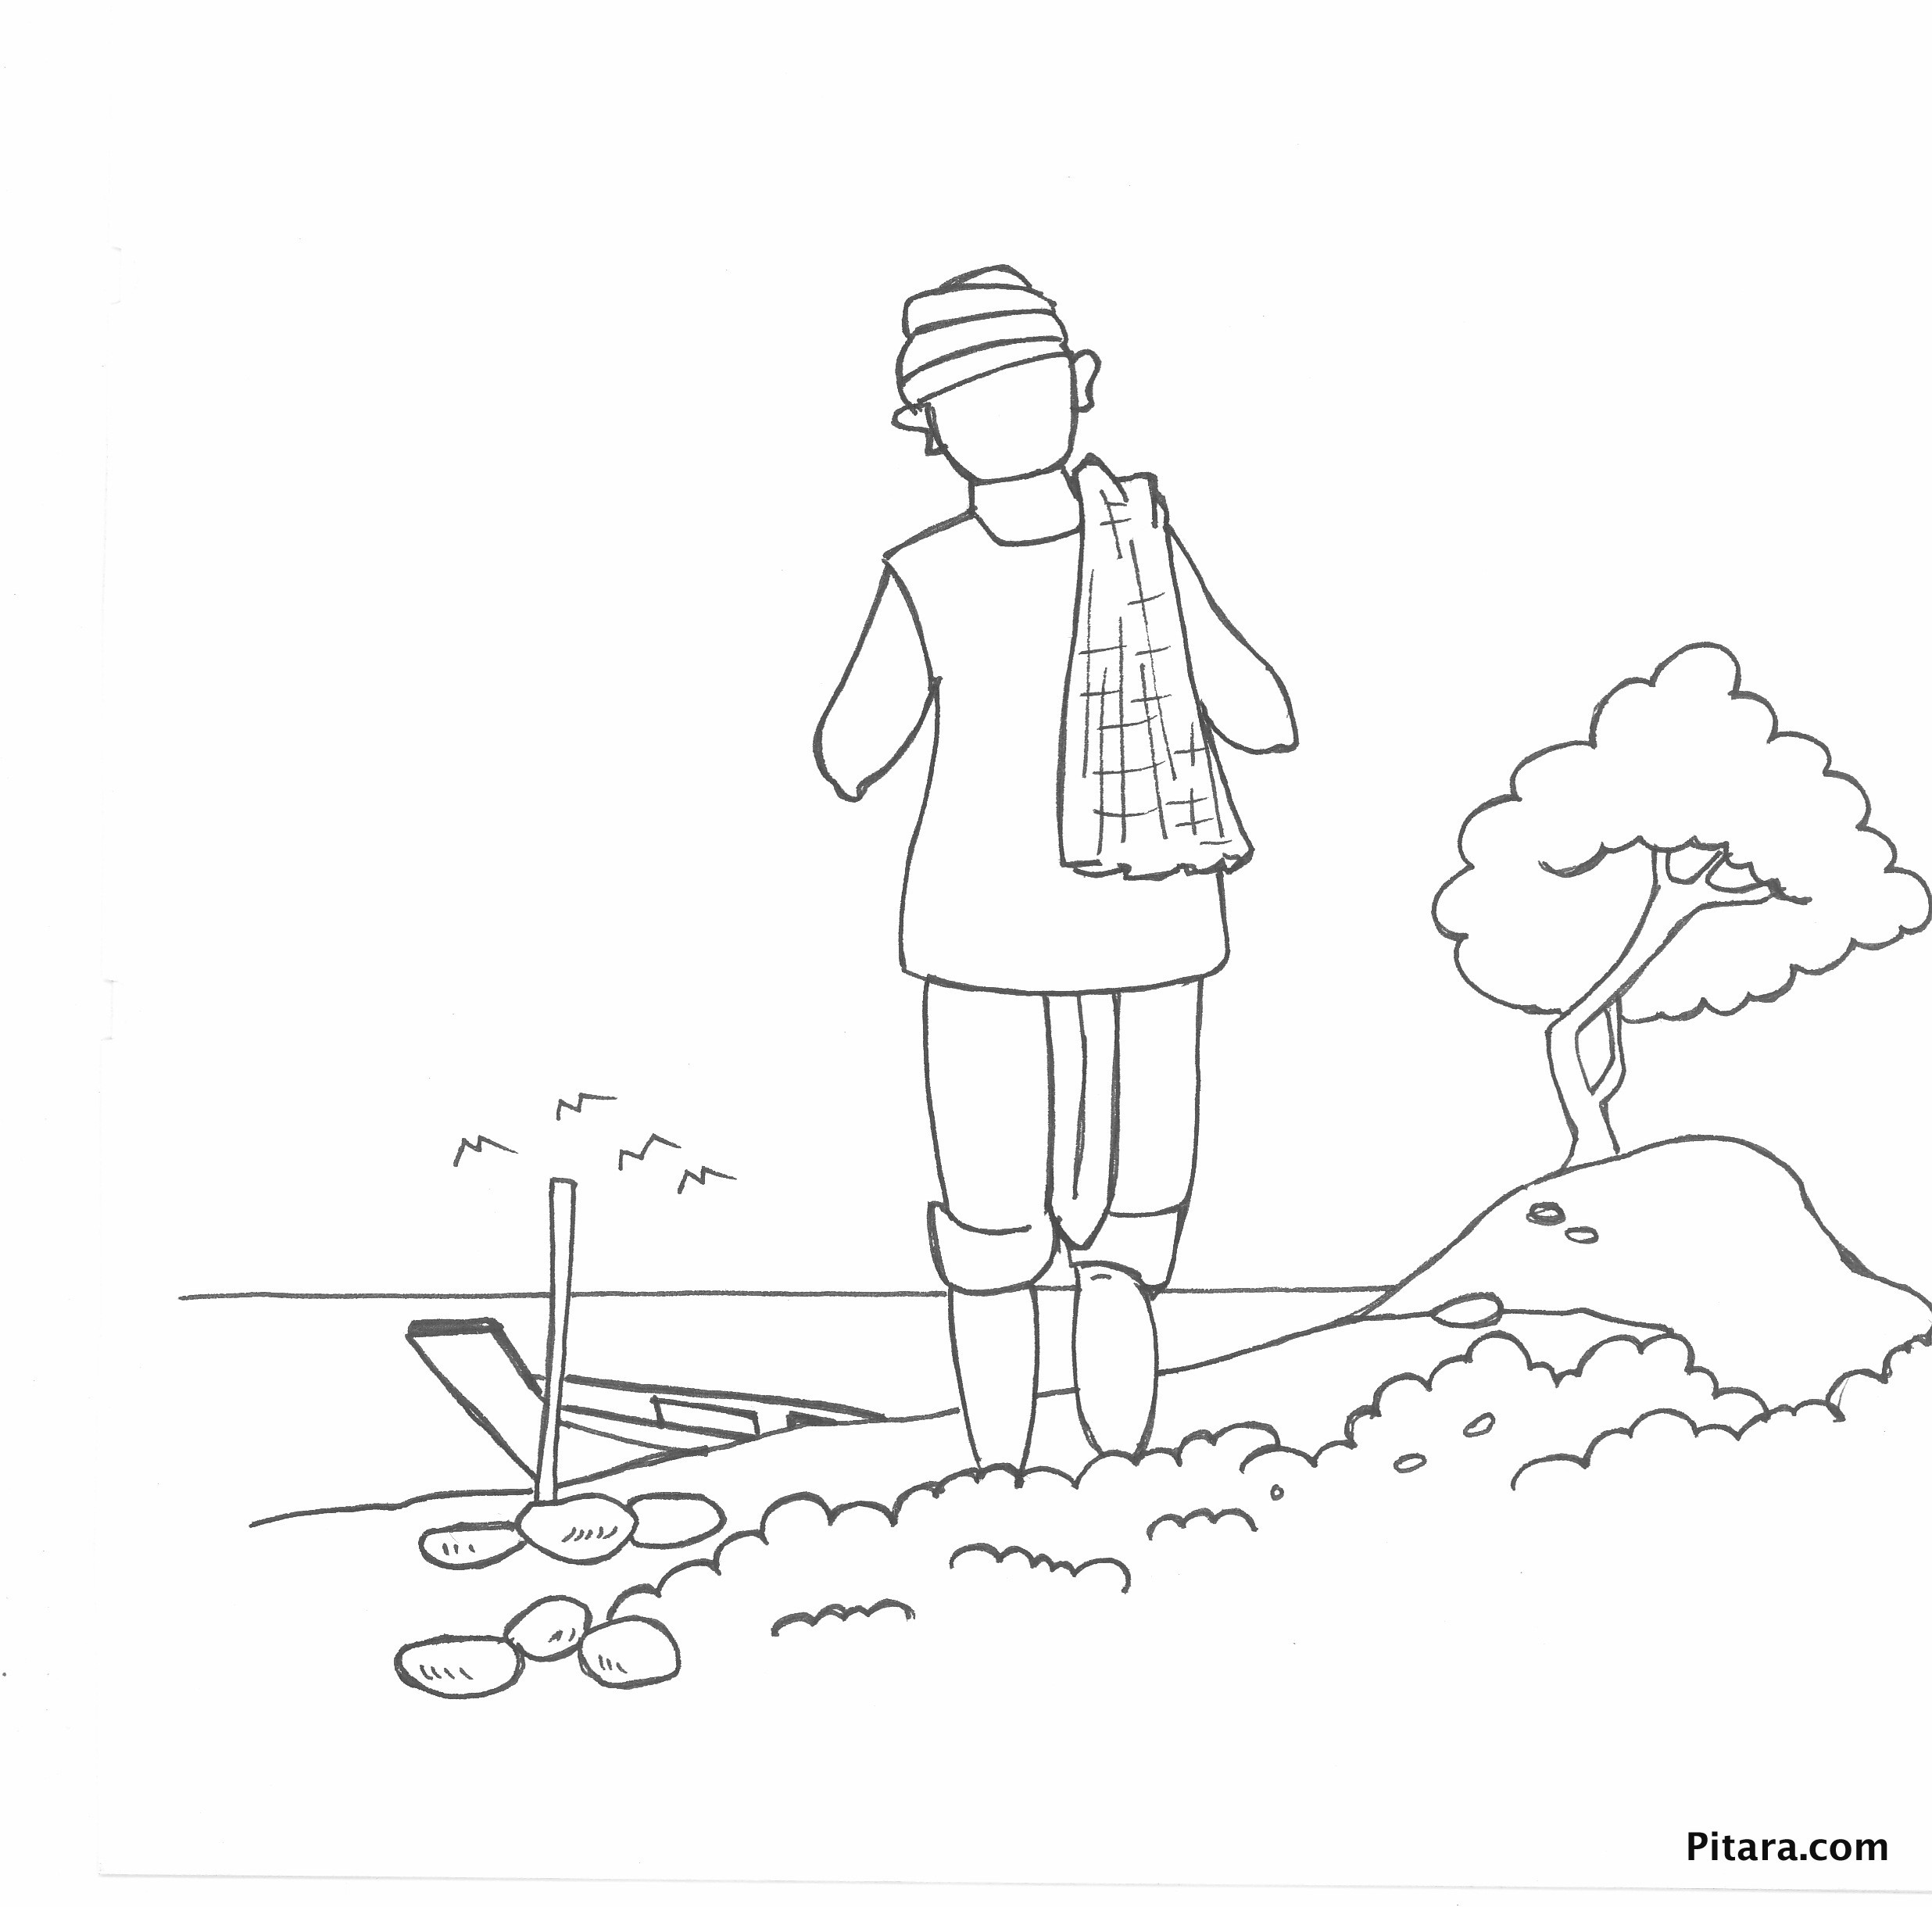 Indian Village People Coloring Pages Pitara Kids Network Lively ...